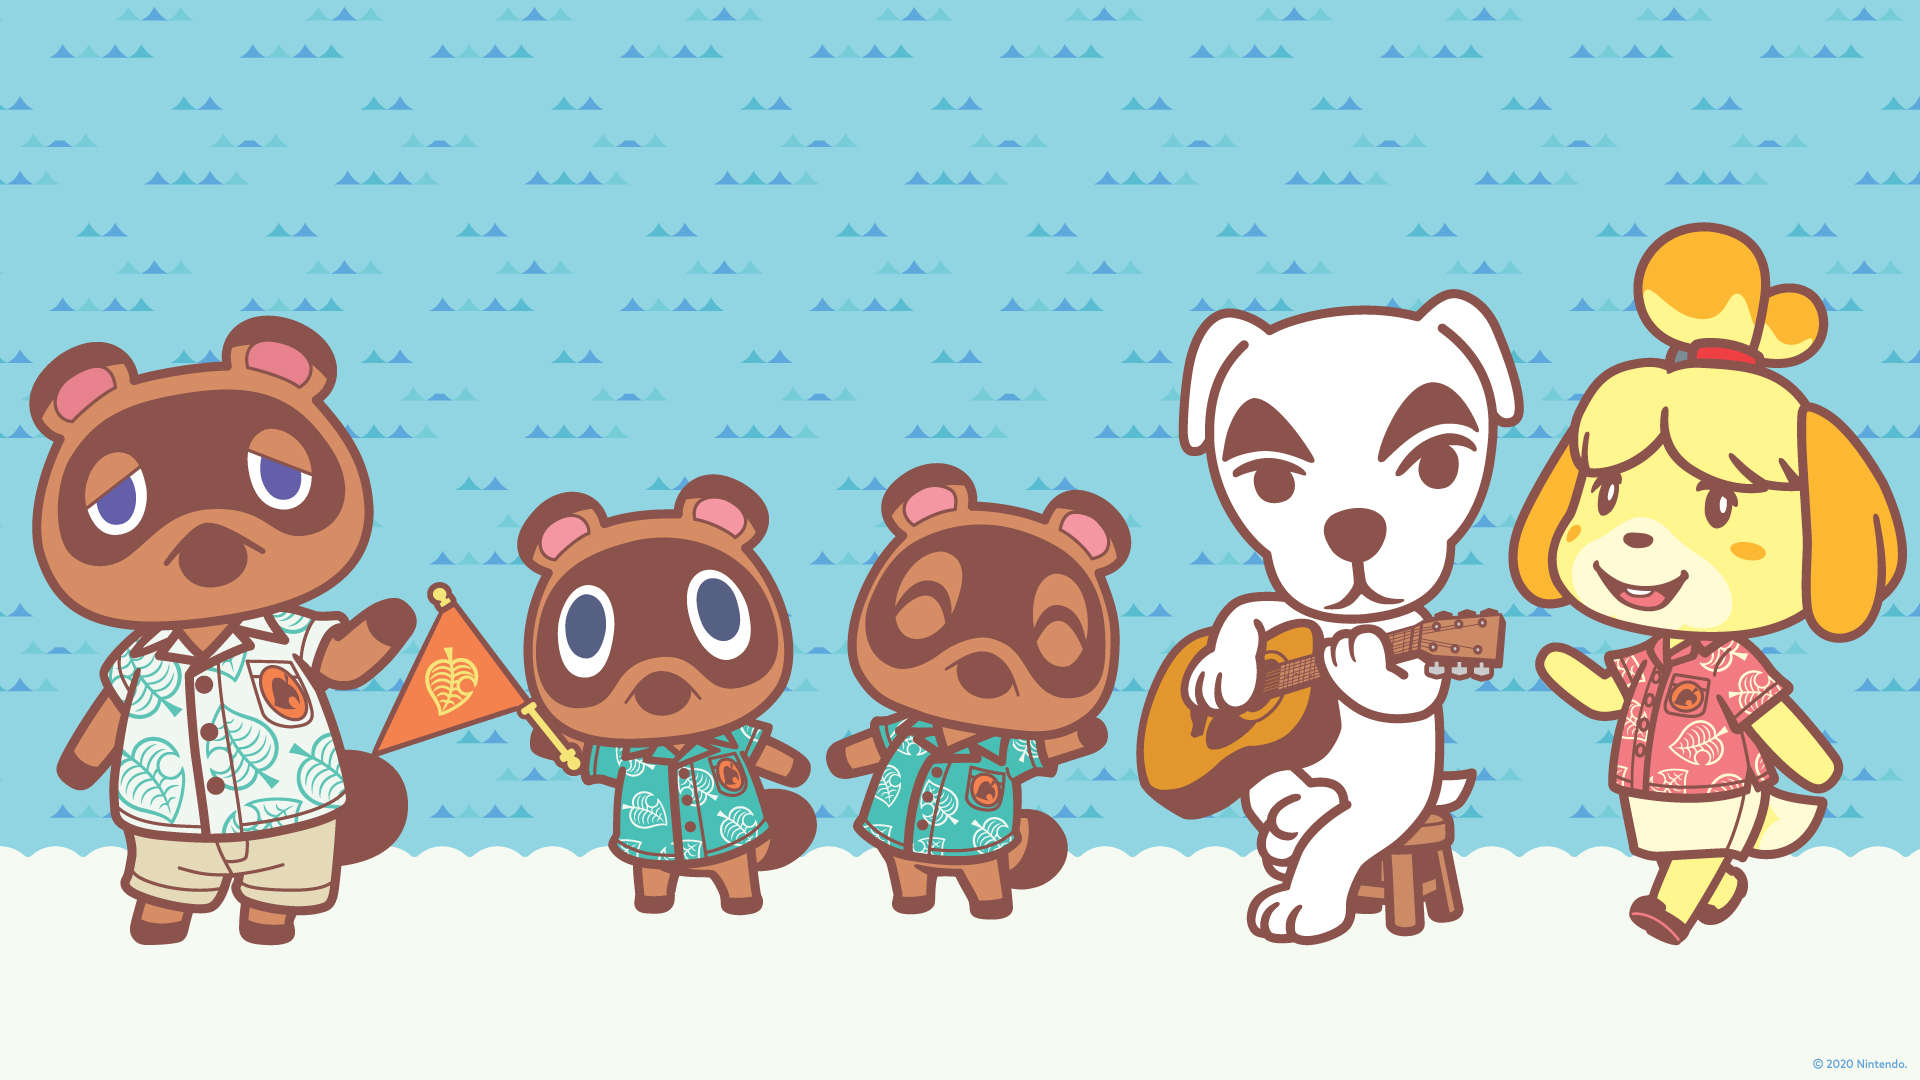 Download Three Cute Animal Crossing New Horizons Wallpapers From